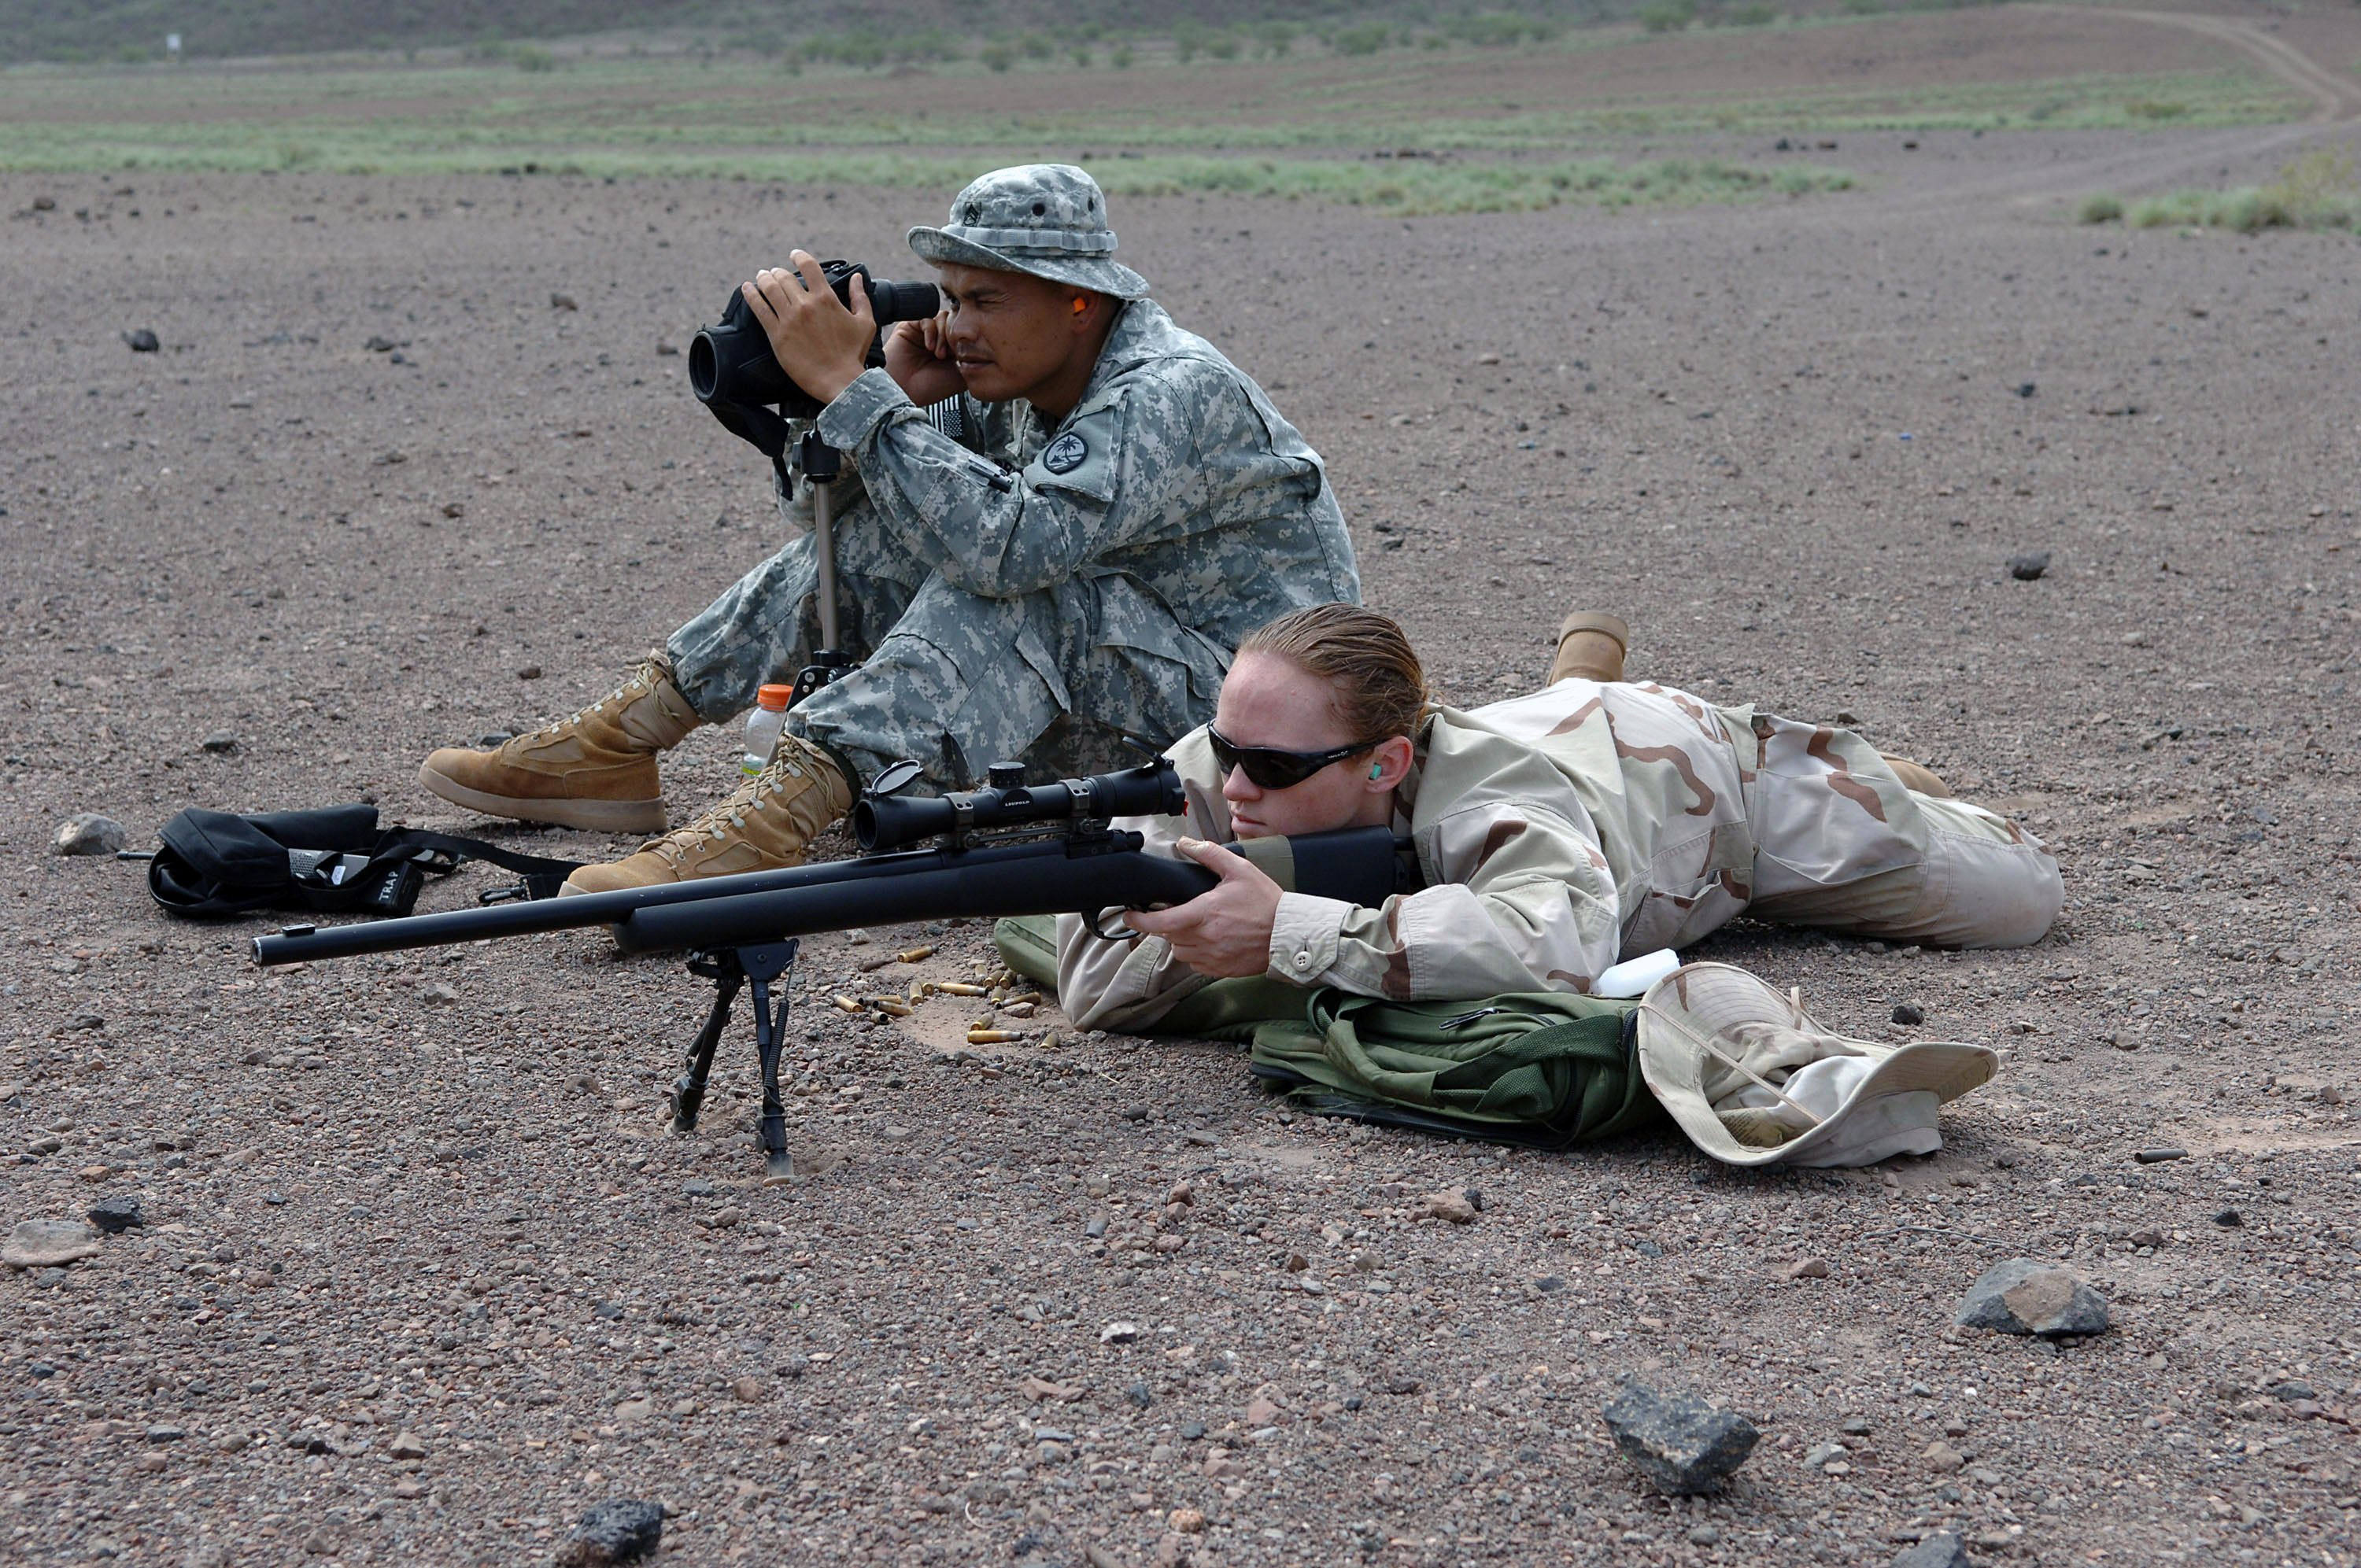 US_Navy_070825-N-3931M-035_Mass_Communication_Specialist_2nd_Class_Angela_McLane_fires_an_M-24_rifle_while_Sgt._1st_Class_Ronald_Brantley,_assigned_to_the_Guam_National_Guard_Delta_Company,_1st_Battalion,_294th_I.jpg